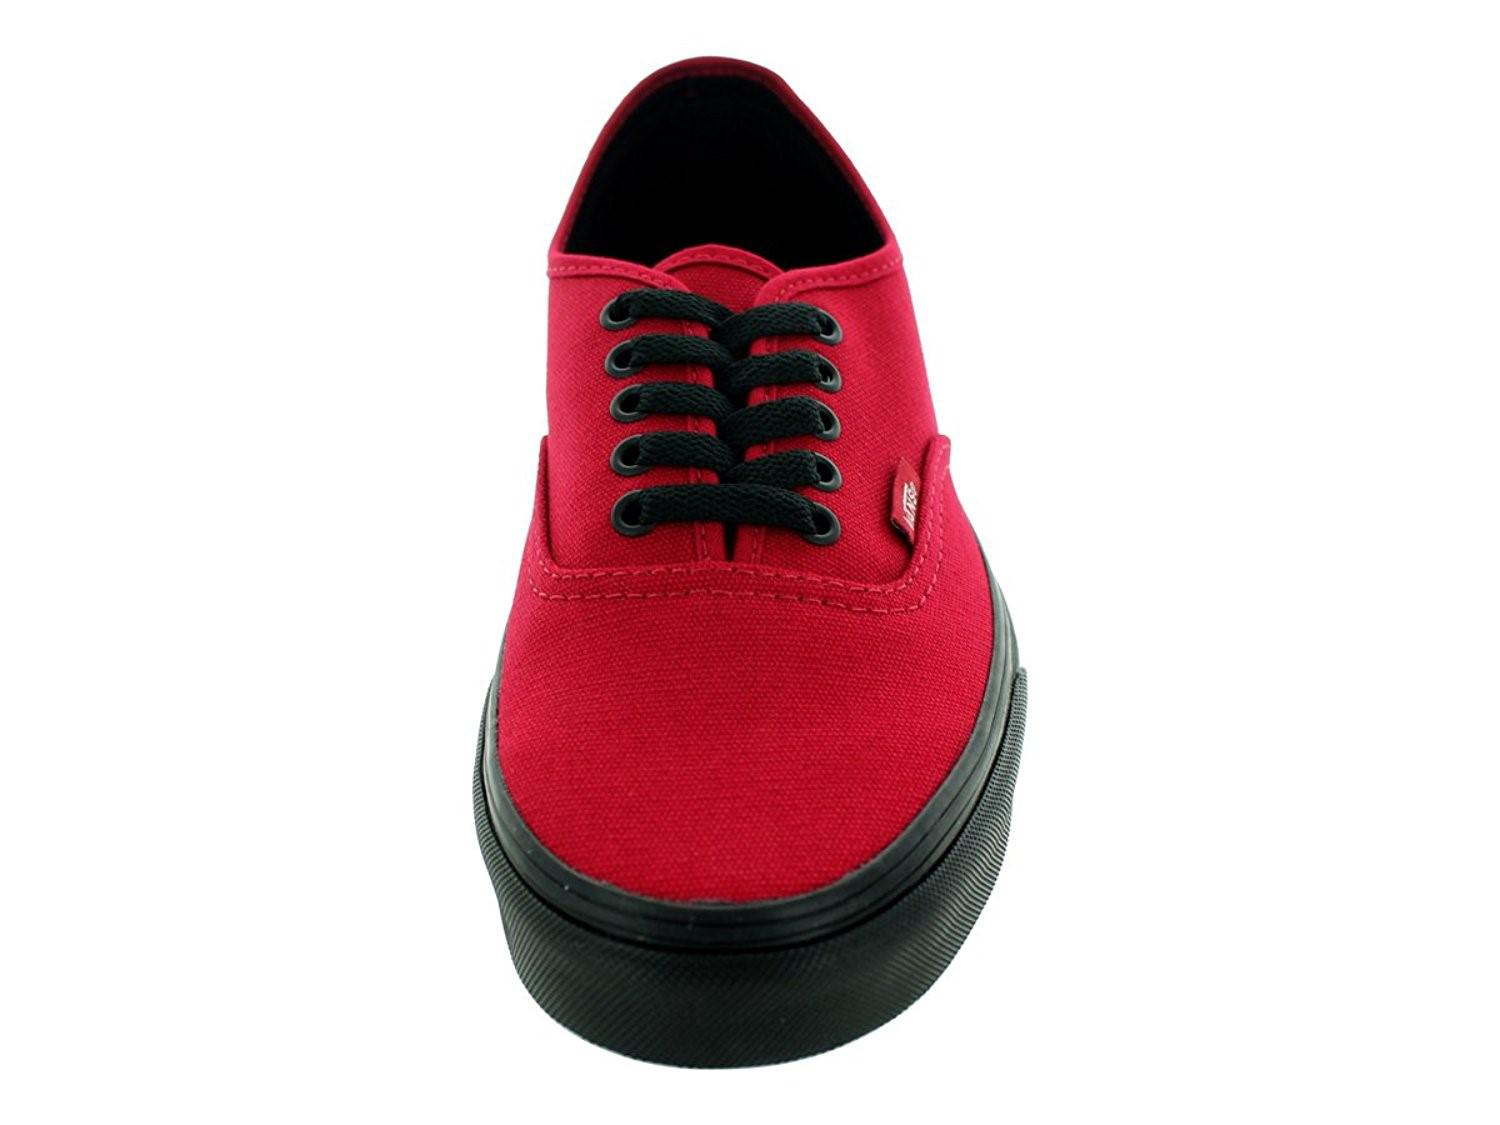 756b49cfa7b393 Vans - Unisex Authentic (black Sole) Jester Red Skate Shoe 10.5 Men Us  .  View fullscreen